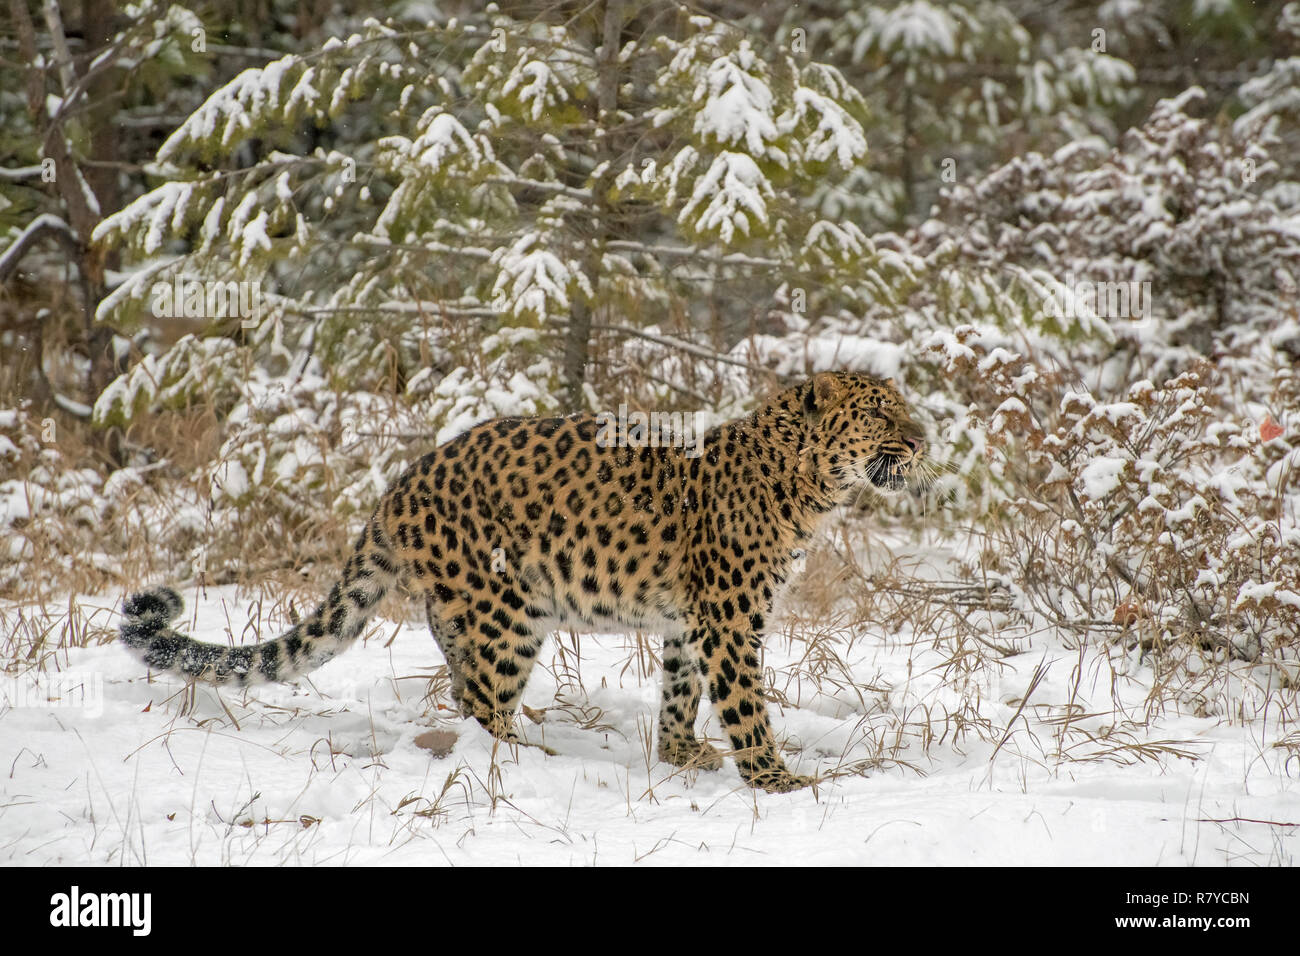 Amur Leopard Growling in front of the Evergreen Trees during a Snowfall - Stock Image